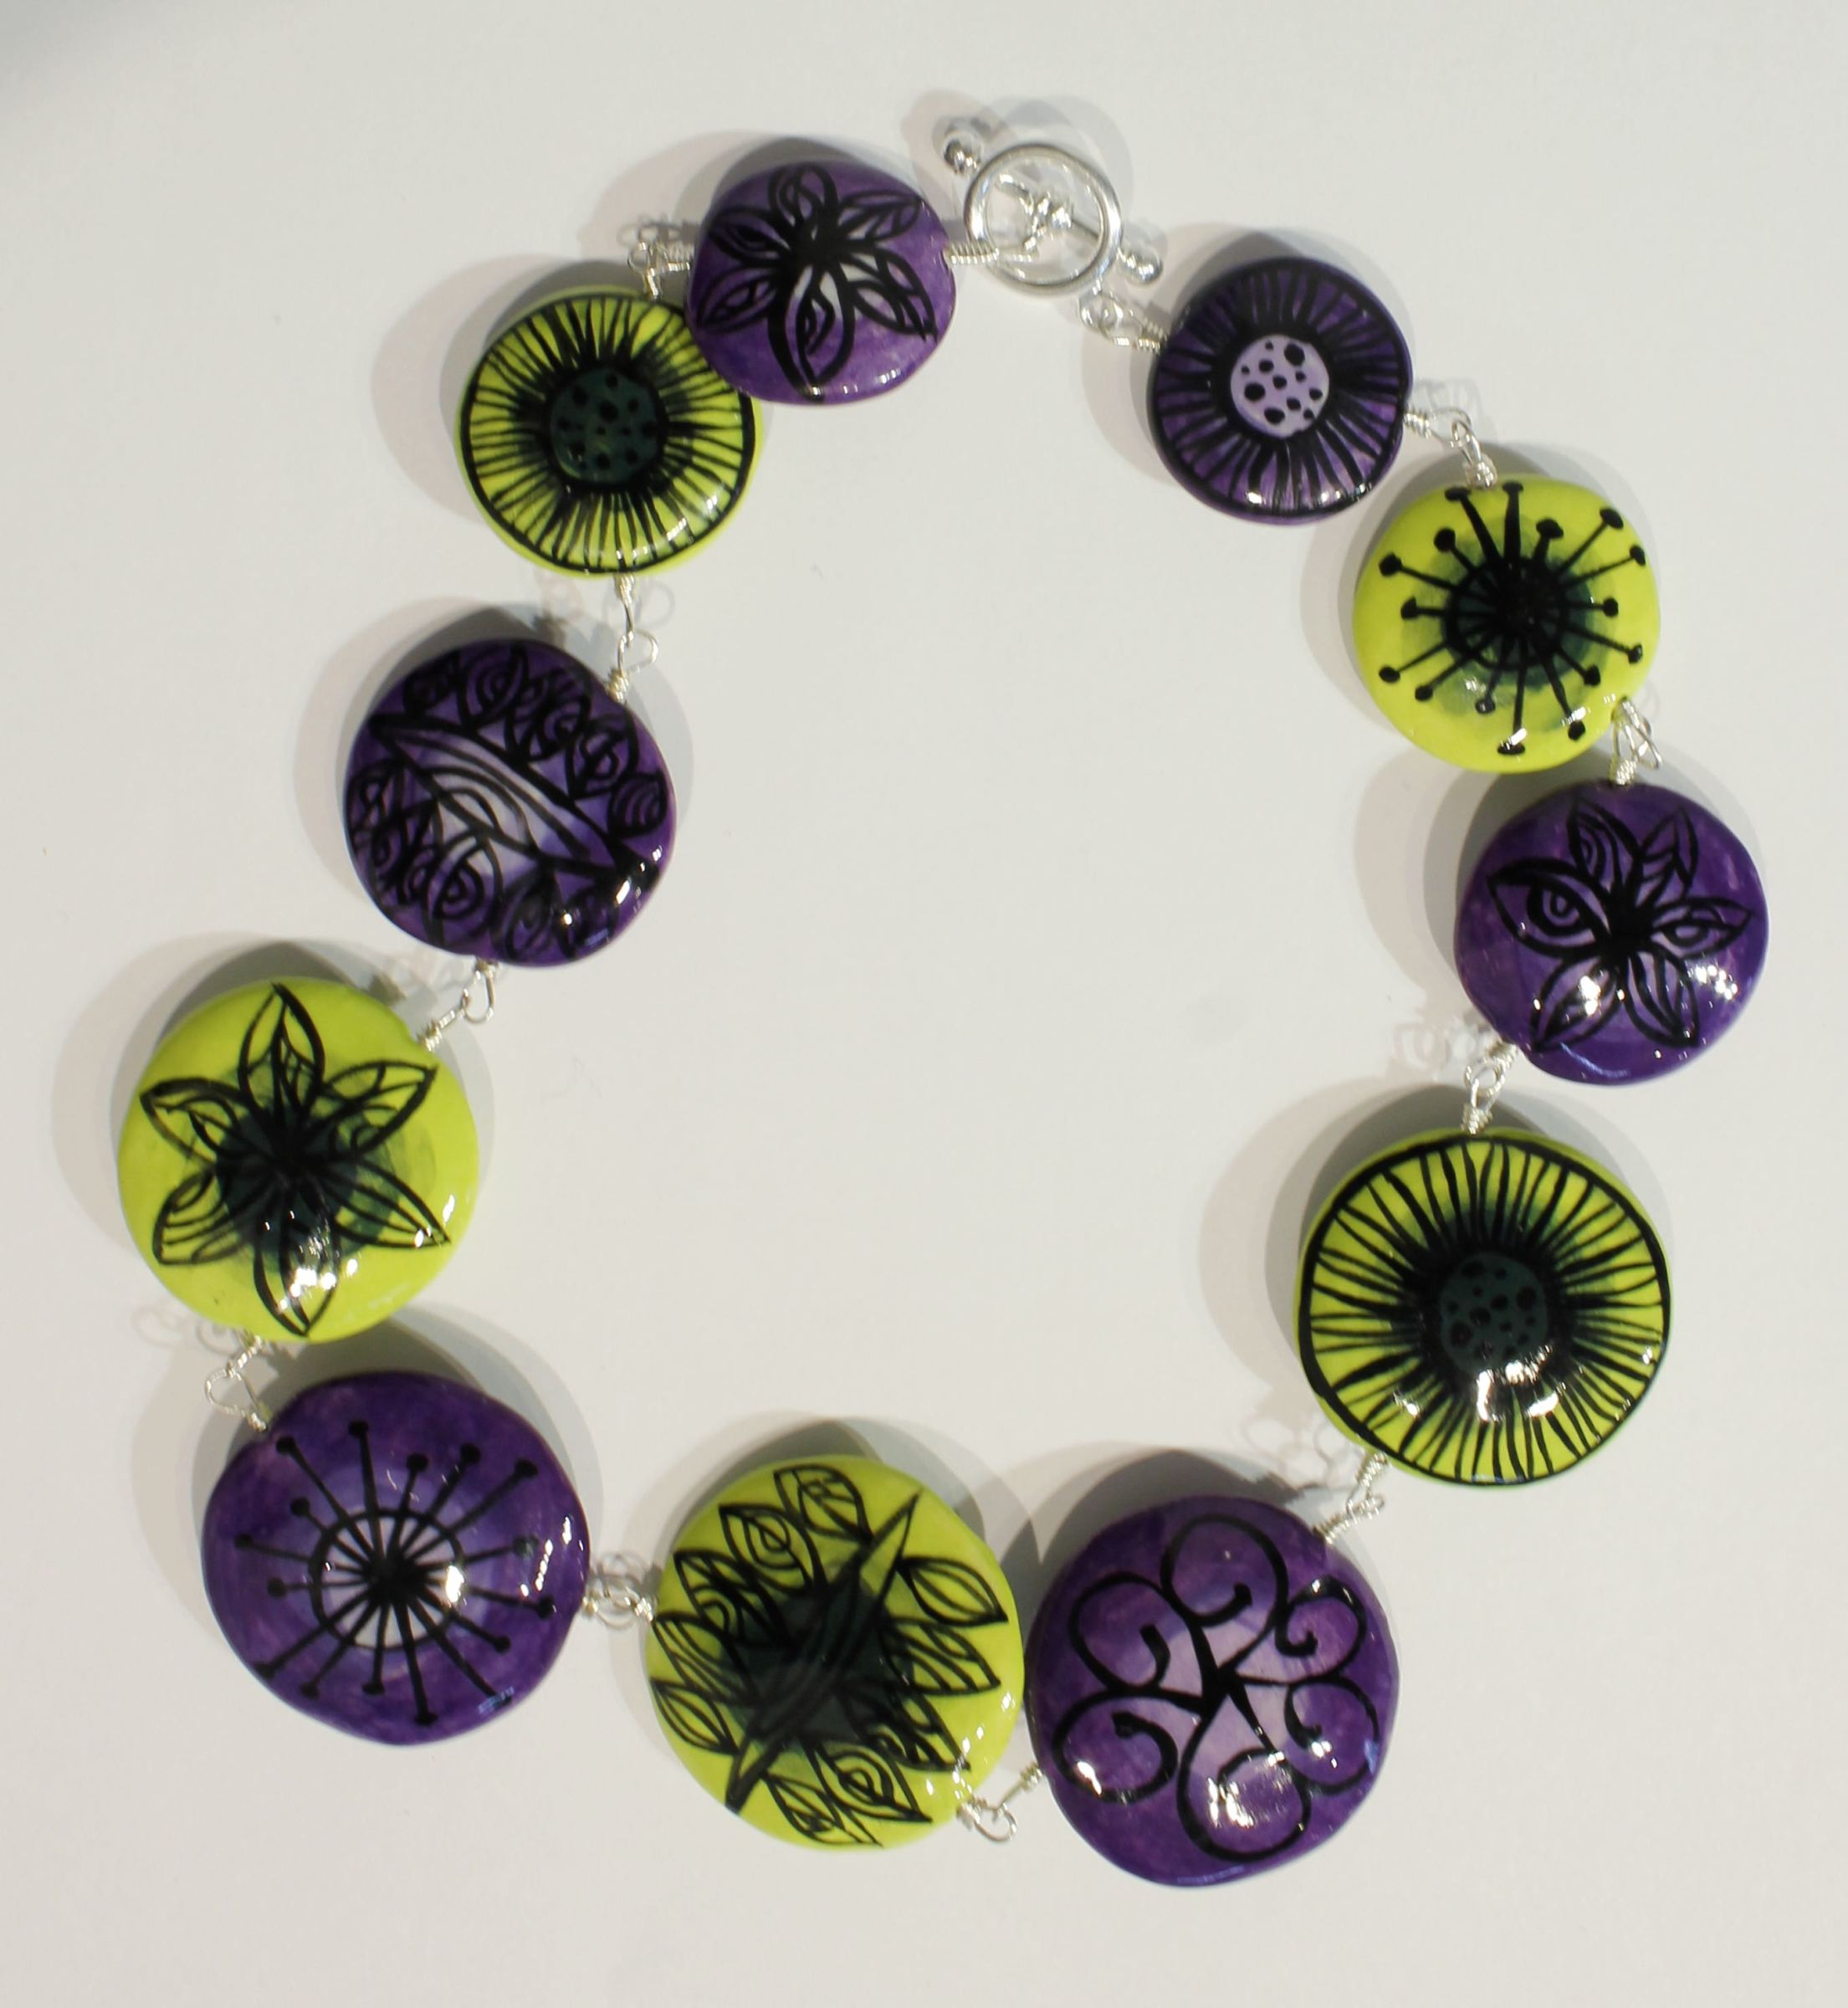 "<span class=""link fancybox-details-link""><a href=""/artists/146-elinor-lamond/works/4915-elinor-lamond-green-and-purple-disc-necklace-2017/"">View Detail Page</a></span><div class=""artist""><strong>Elinor Lamond</strong></div> <div class=""title""><em>Green and Purple Disc Necklace </em>, 2017</div> <div class=""medium"">handmade ceramic beads</div><div class=""price"">£100.00</div><div class=""copyright_line"">Copyright The Artist</div>"